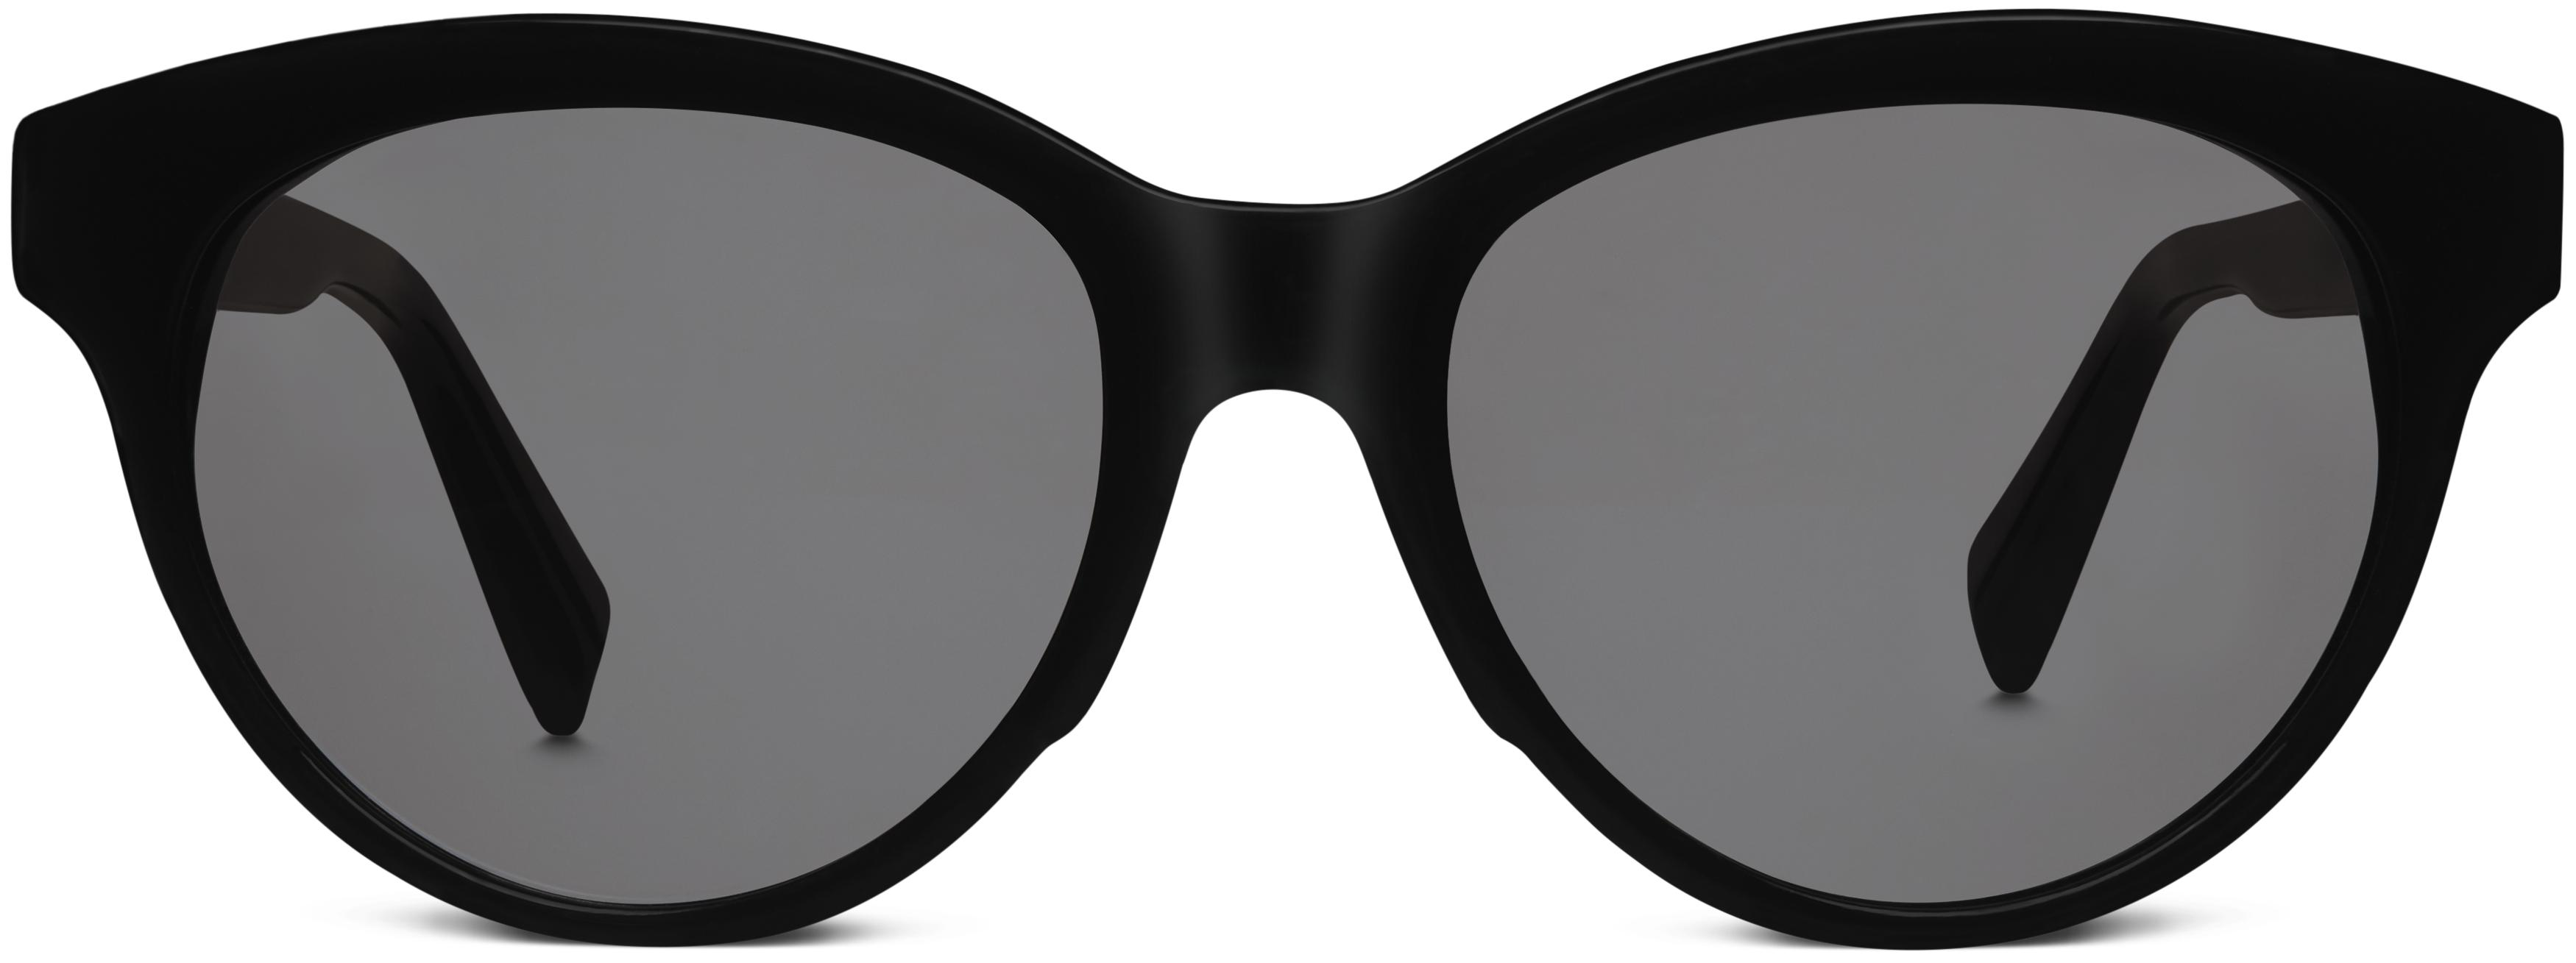 47d254f2a9 Piper sunglasses in jet black with classic grey lenses for women warby  parker jpg 3500x1309 Piper